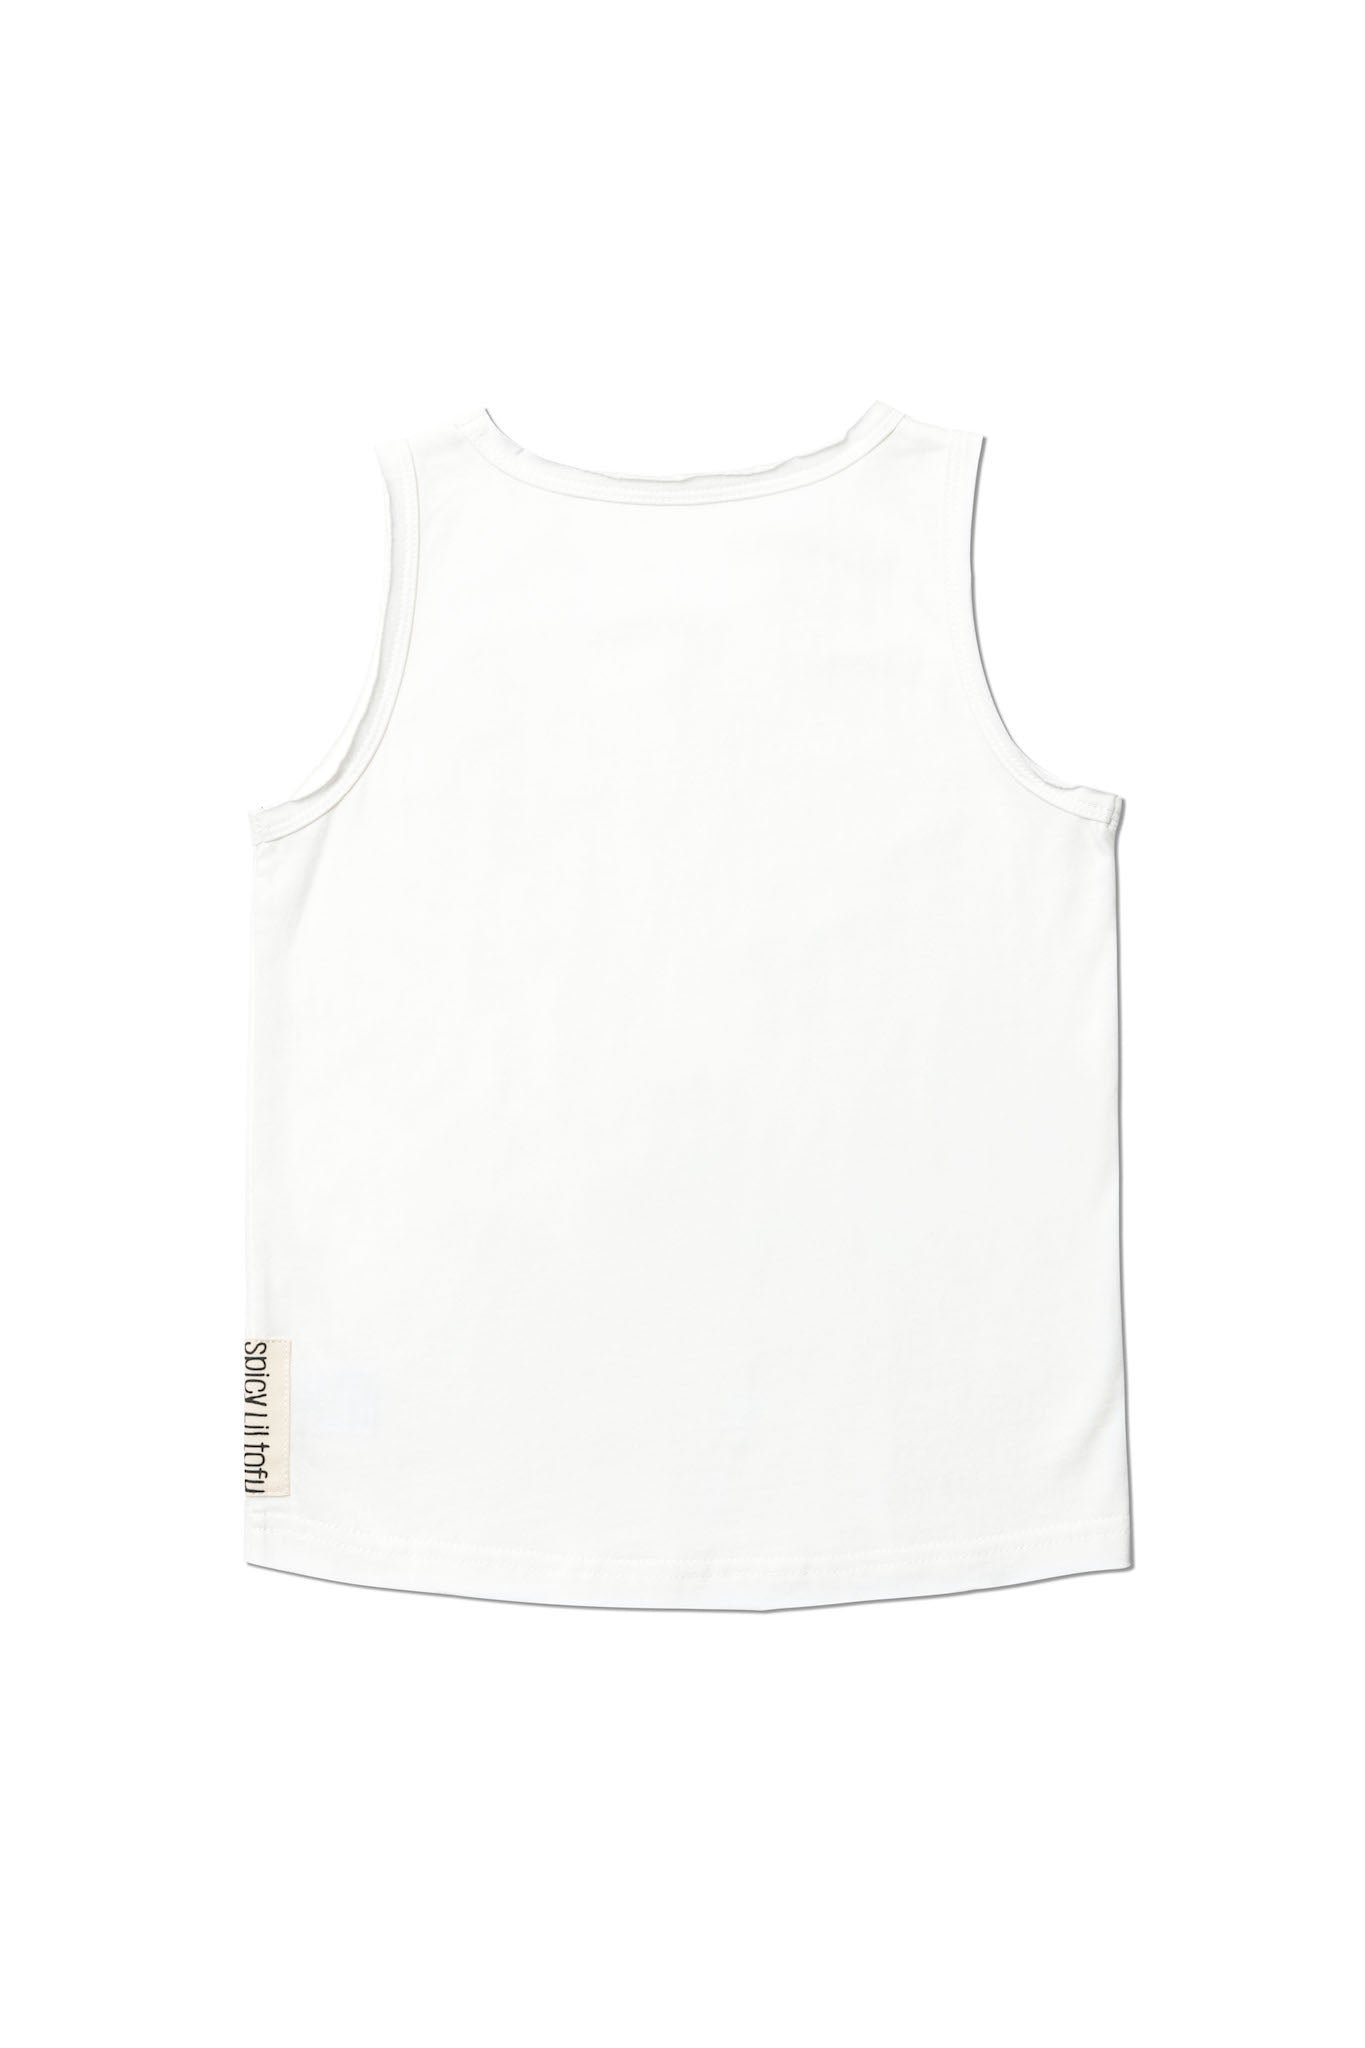 Raven Sleeveless Tee - Spicy Lil Tofu